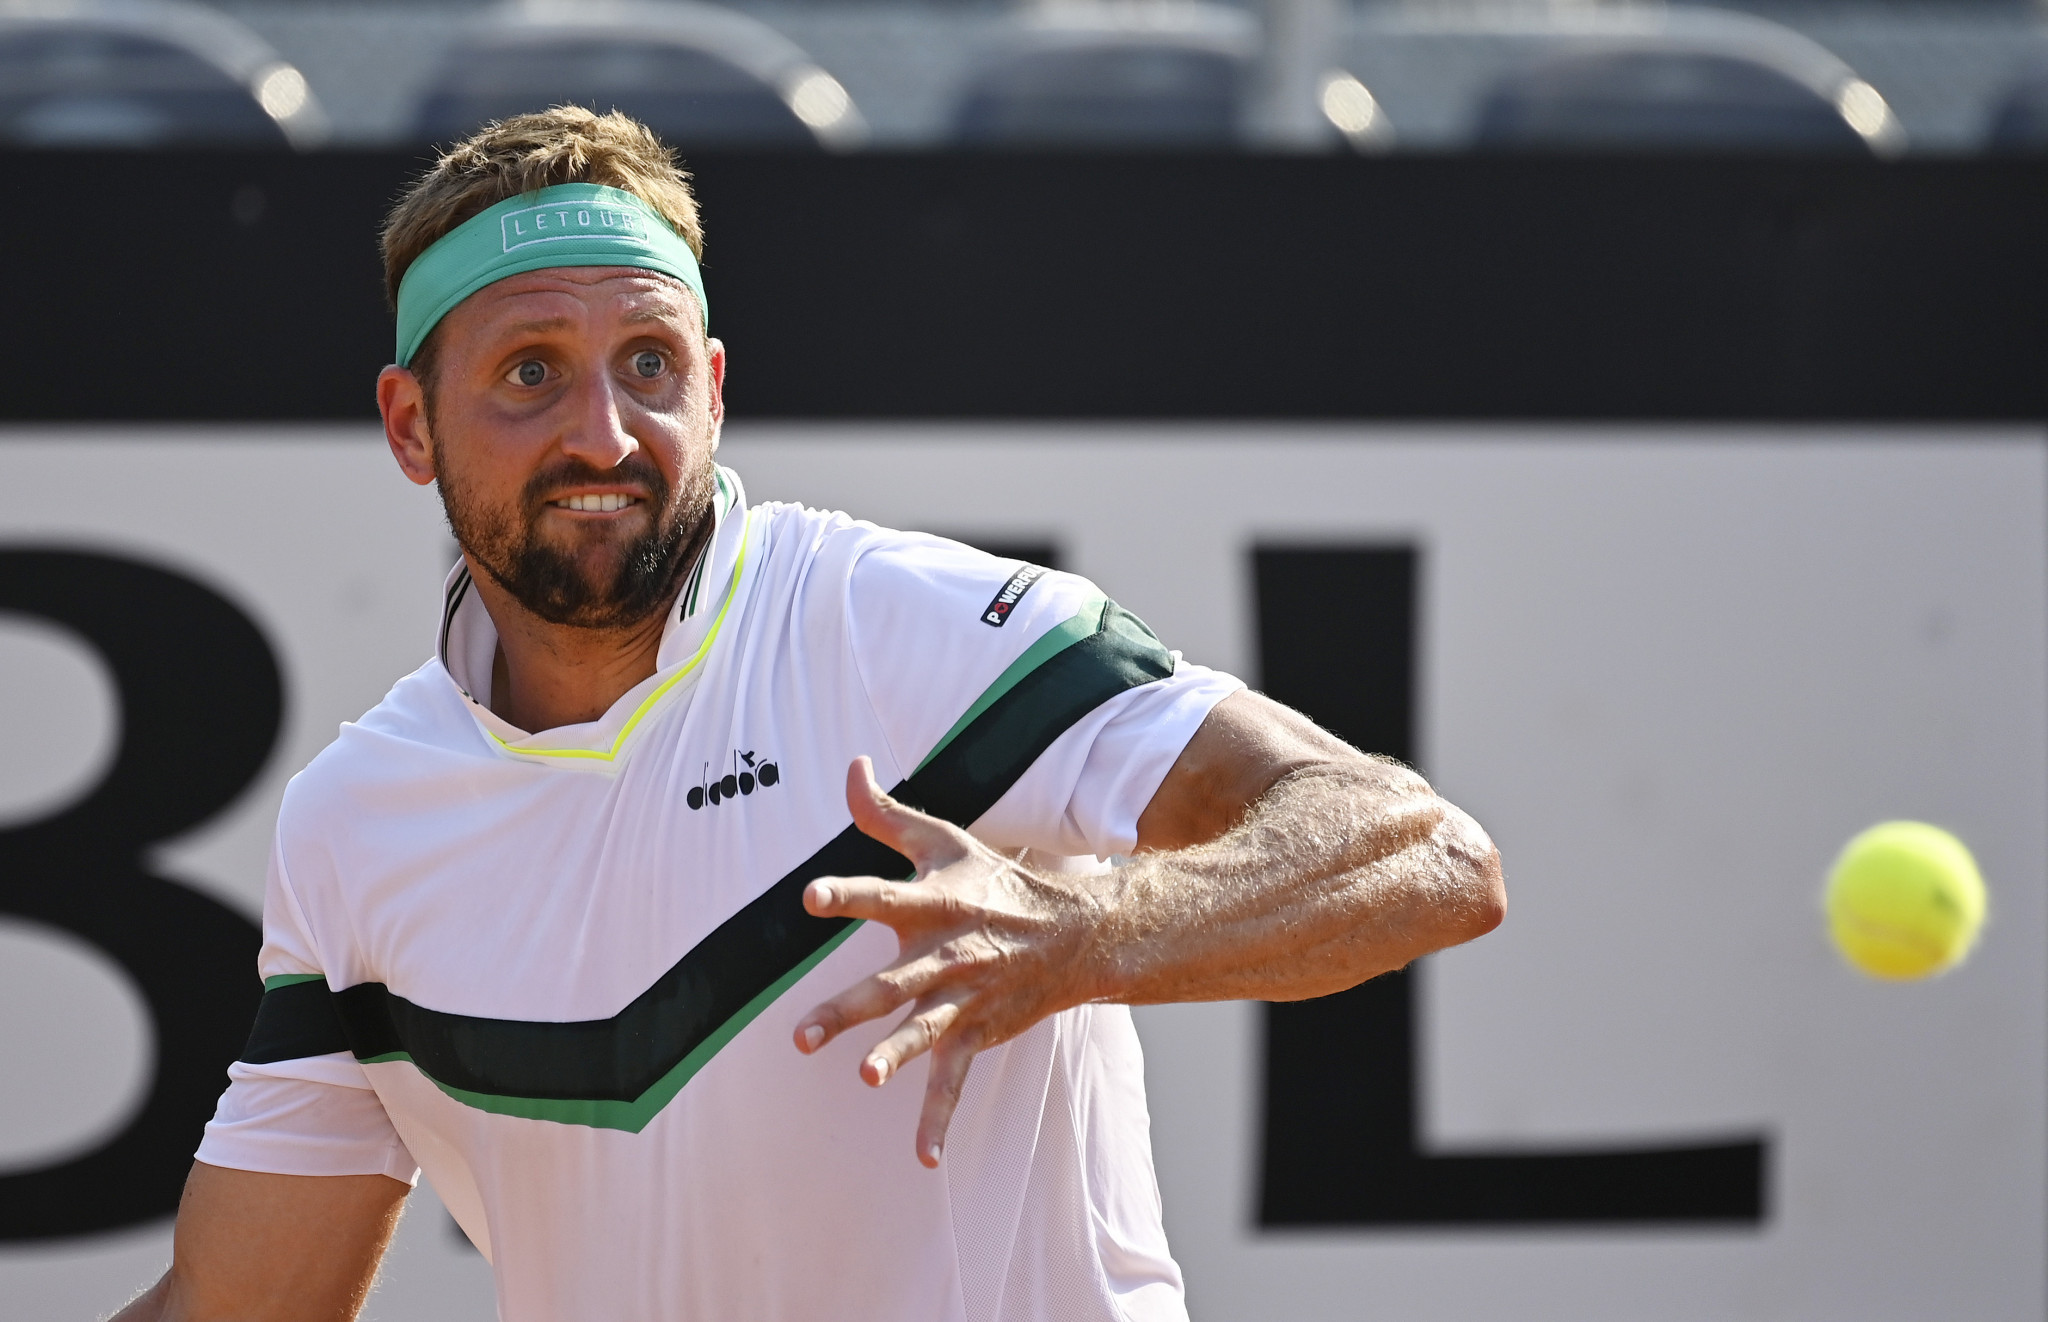 Tennys Sandgren has flown to Australia after being cleared by authorities ©Getty Images